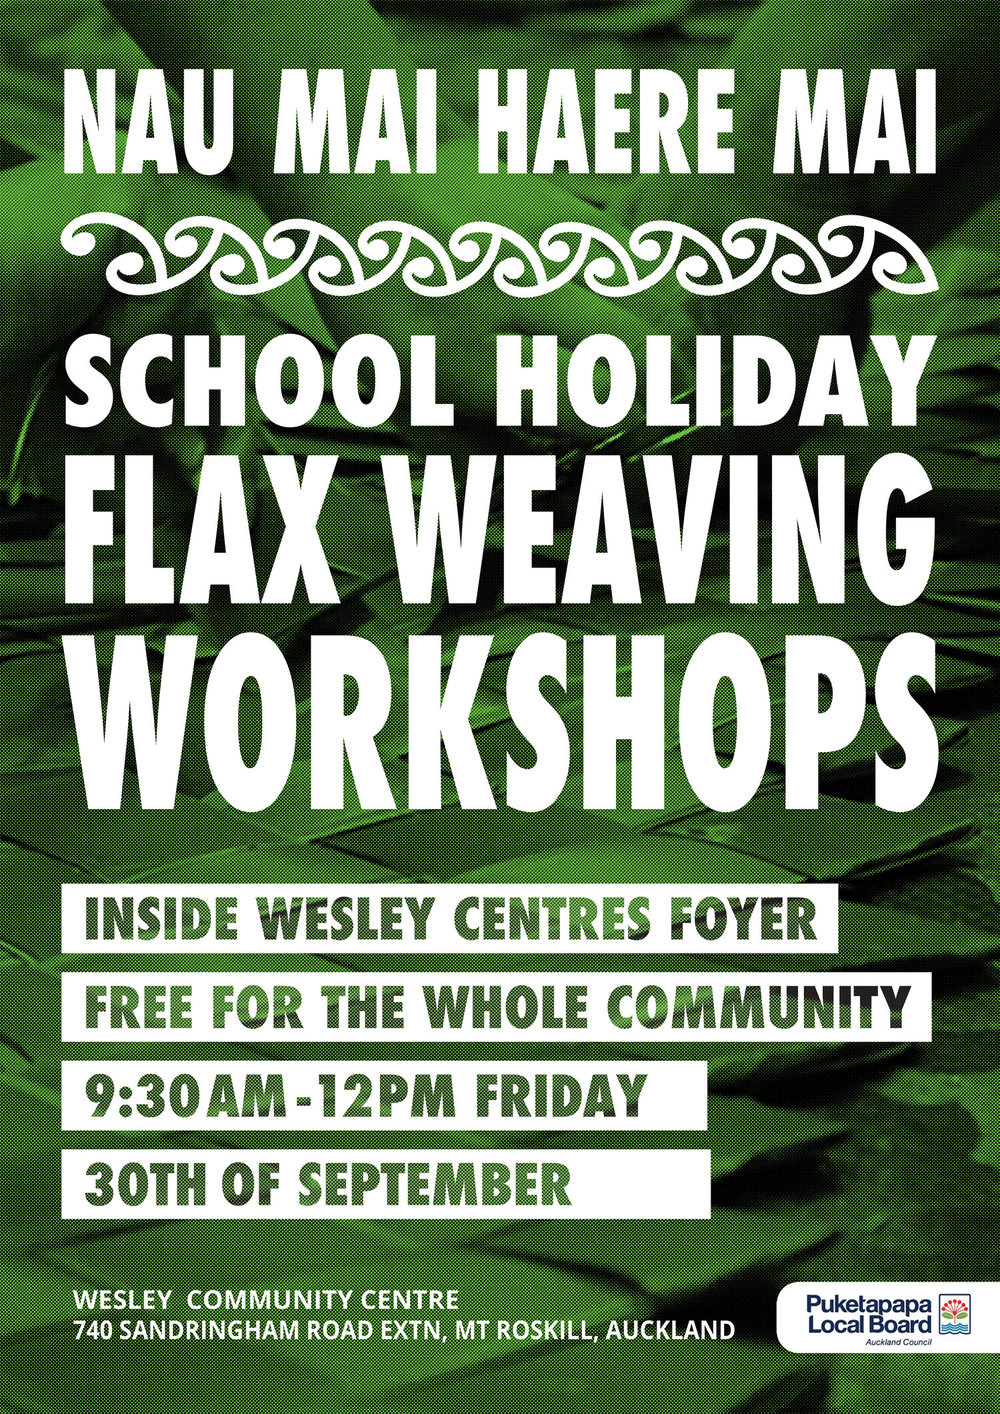 School-Holidays-Flax-Weaving.jpg